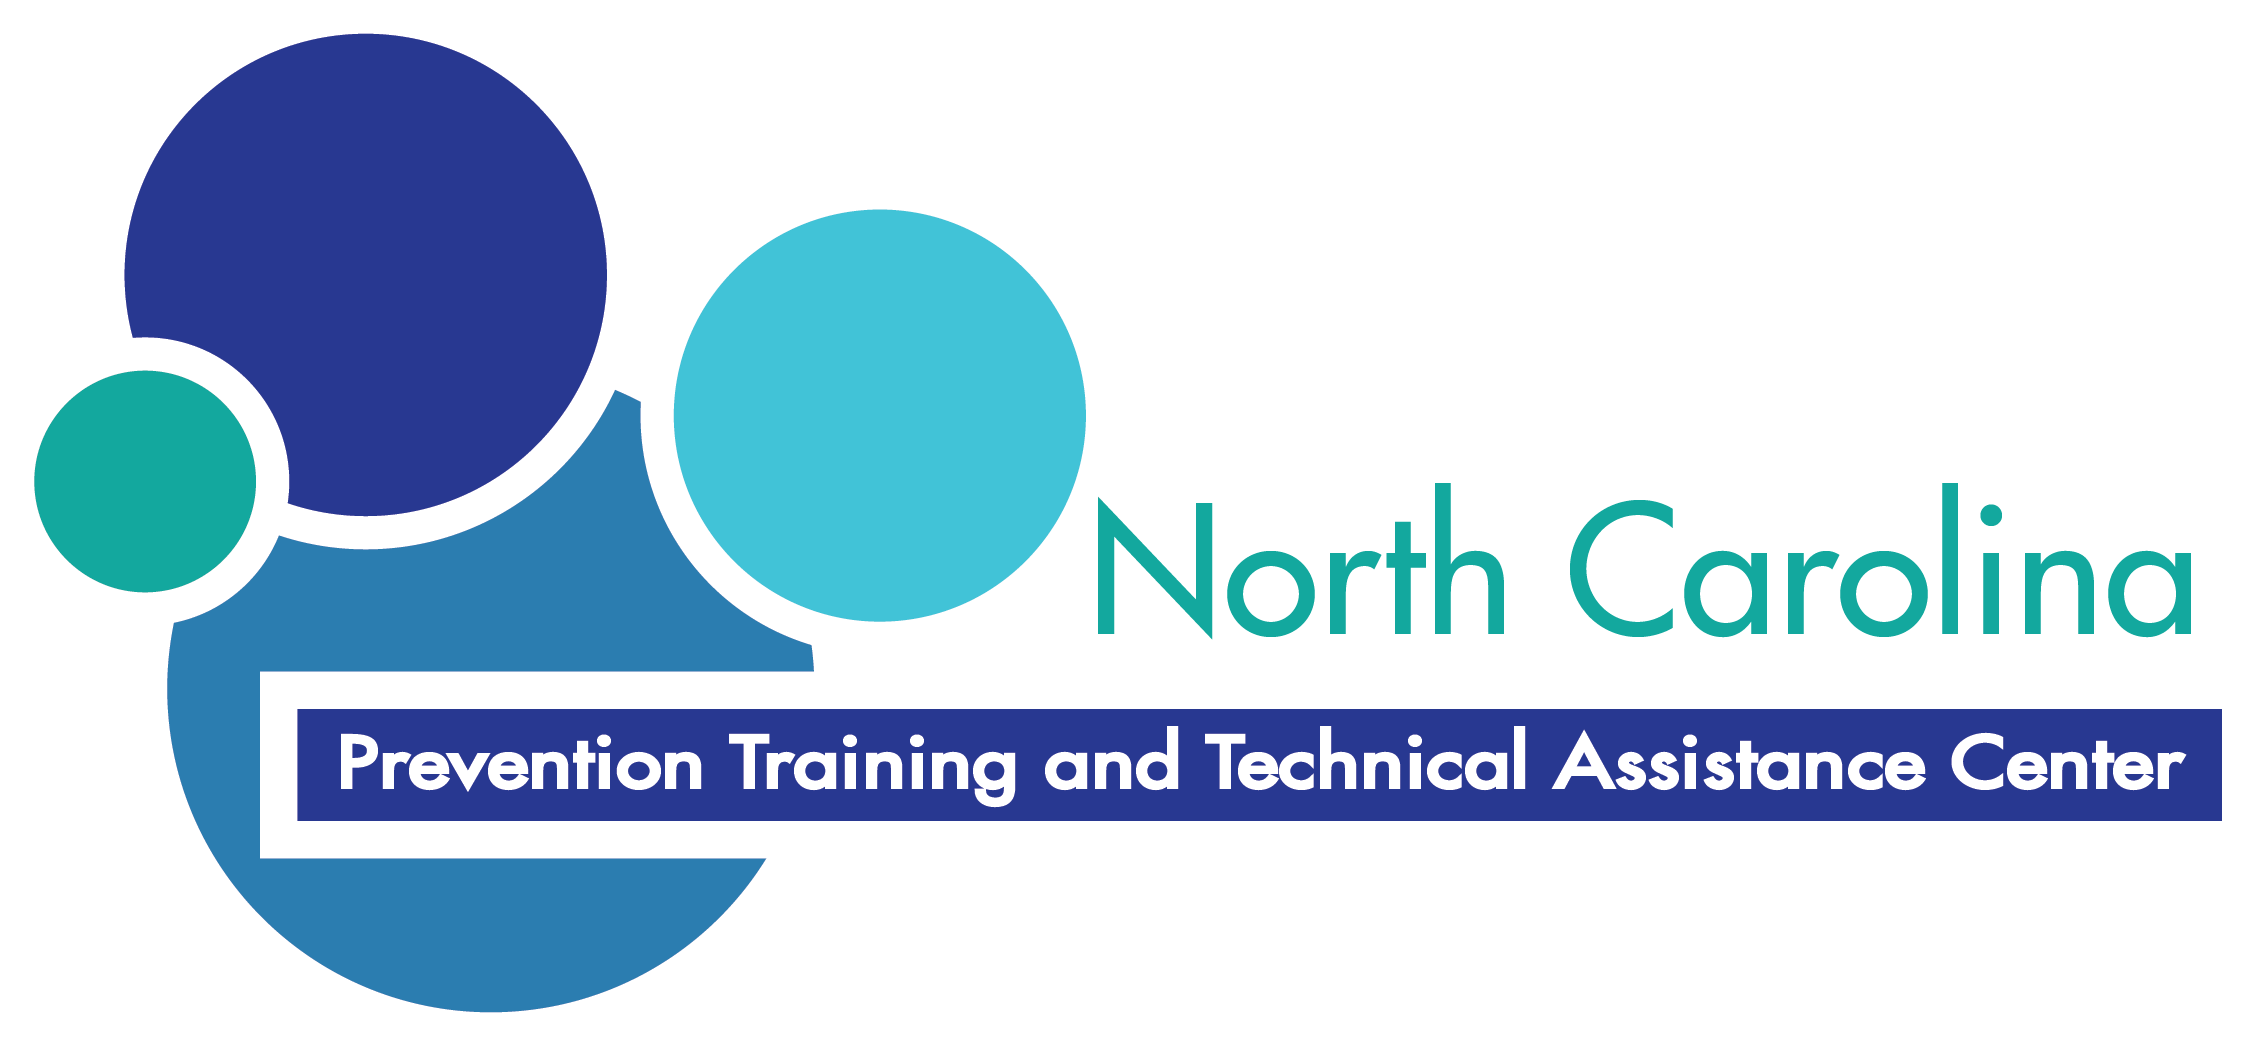 Welcome to North Carolina Training and Technical Assistance Center's News Page